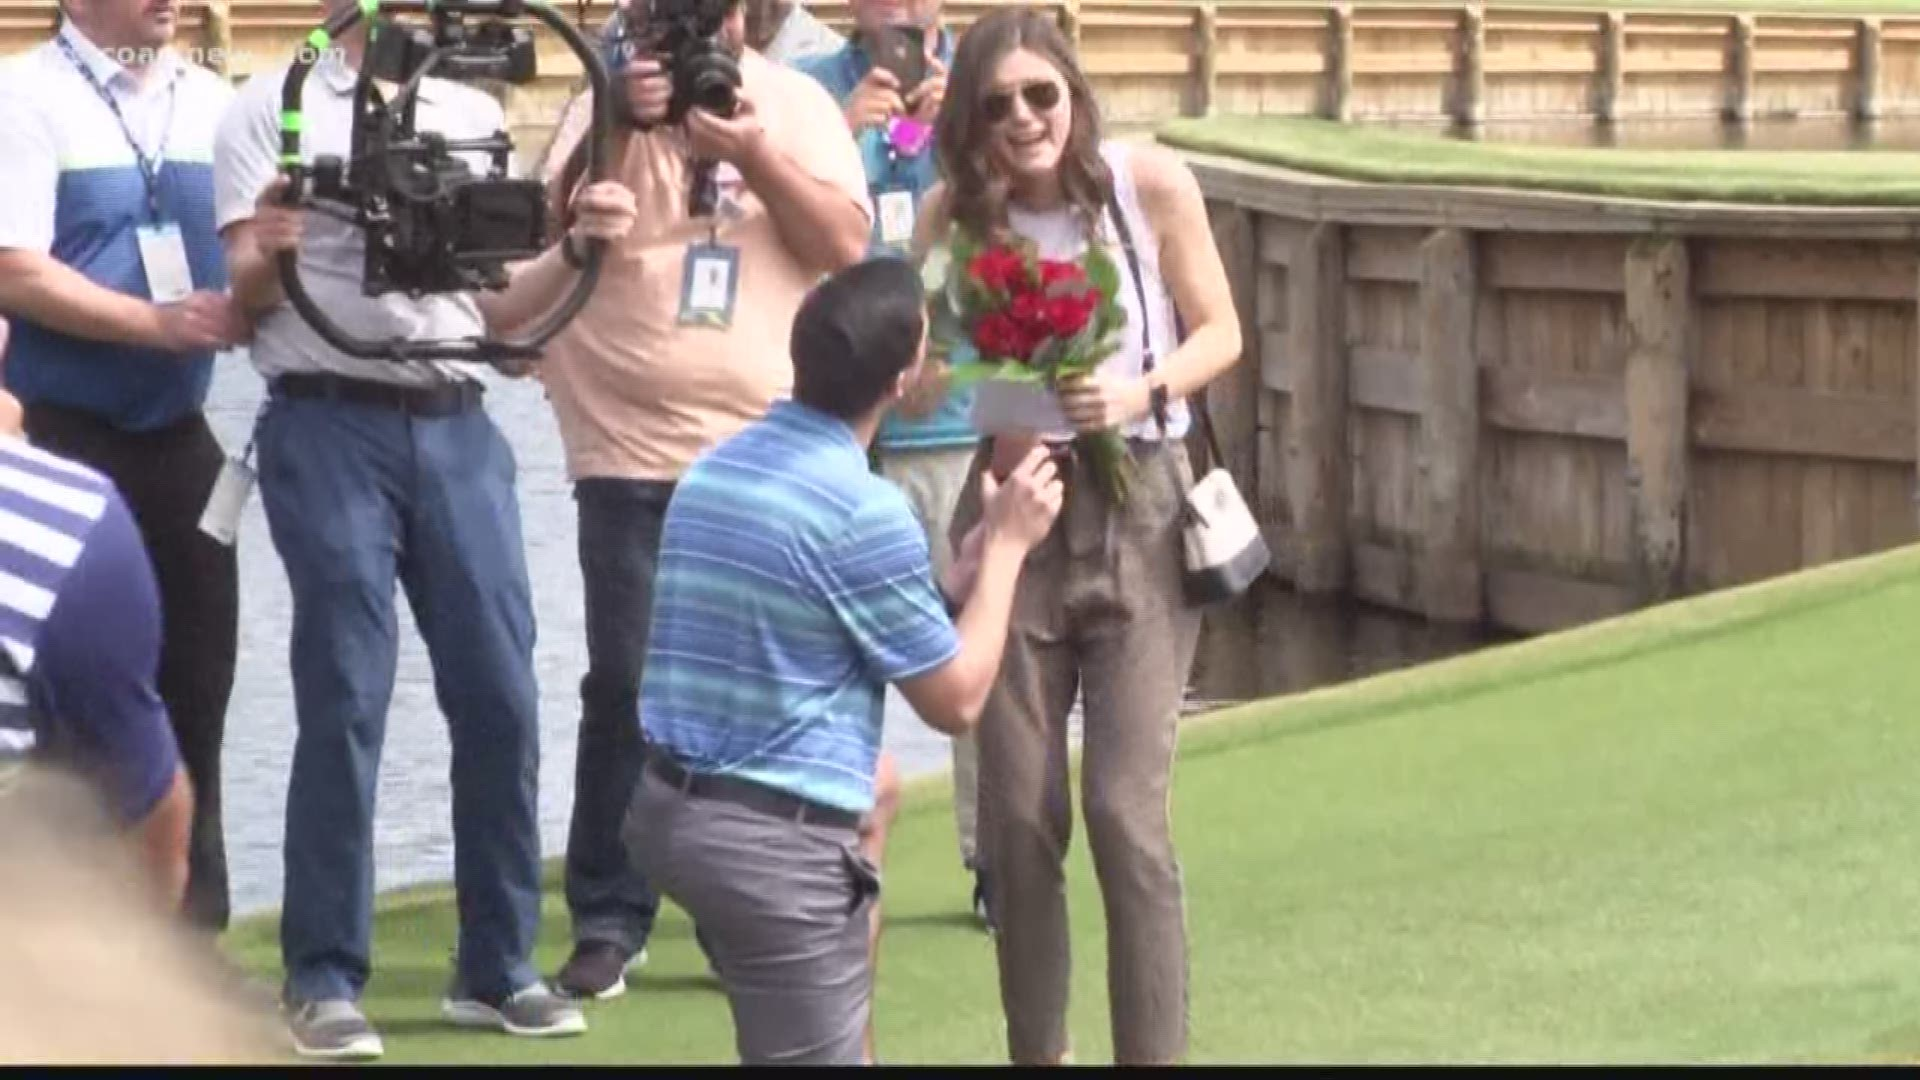 Sergio Garcia helps man propose to his girlfriend at The Players  Championship | firstcoastnews.com